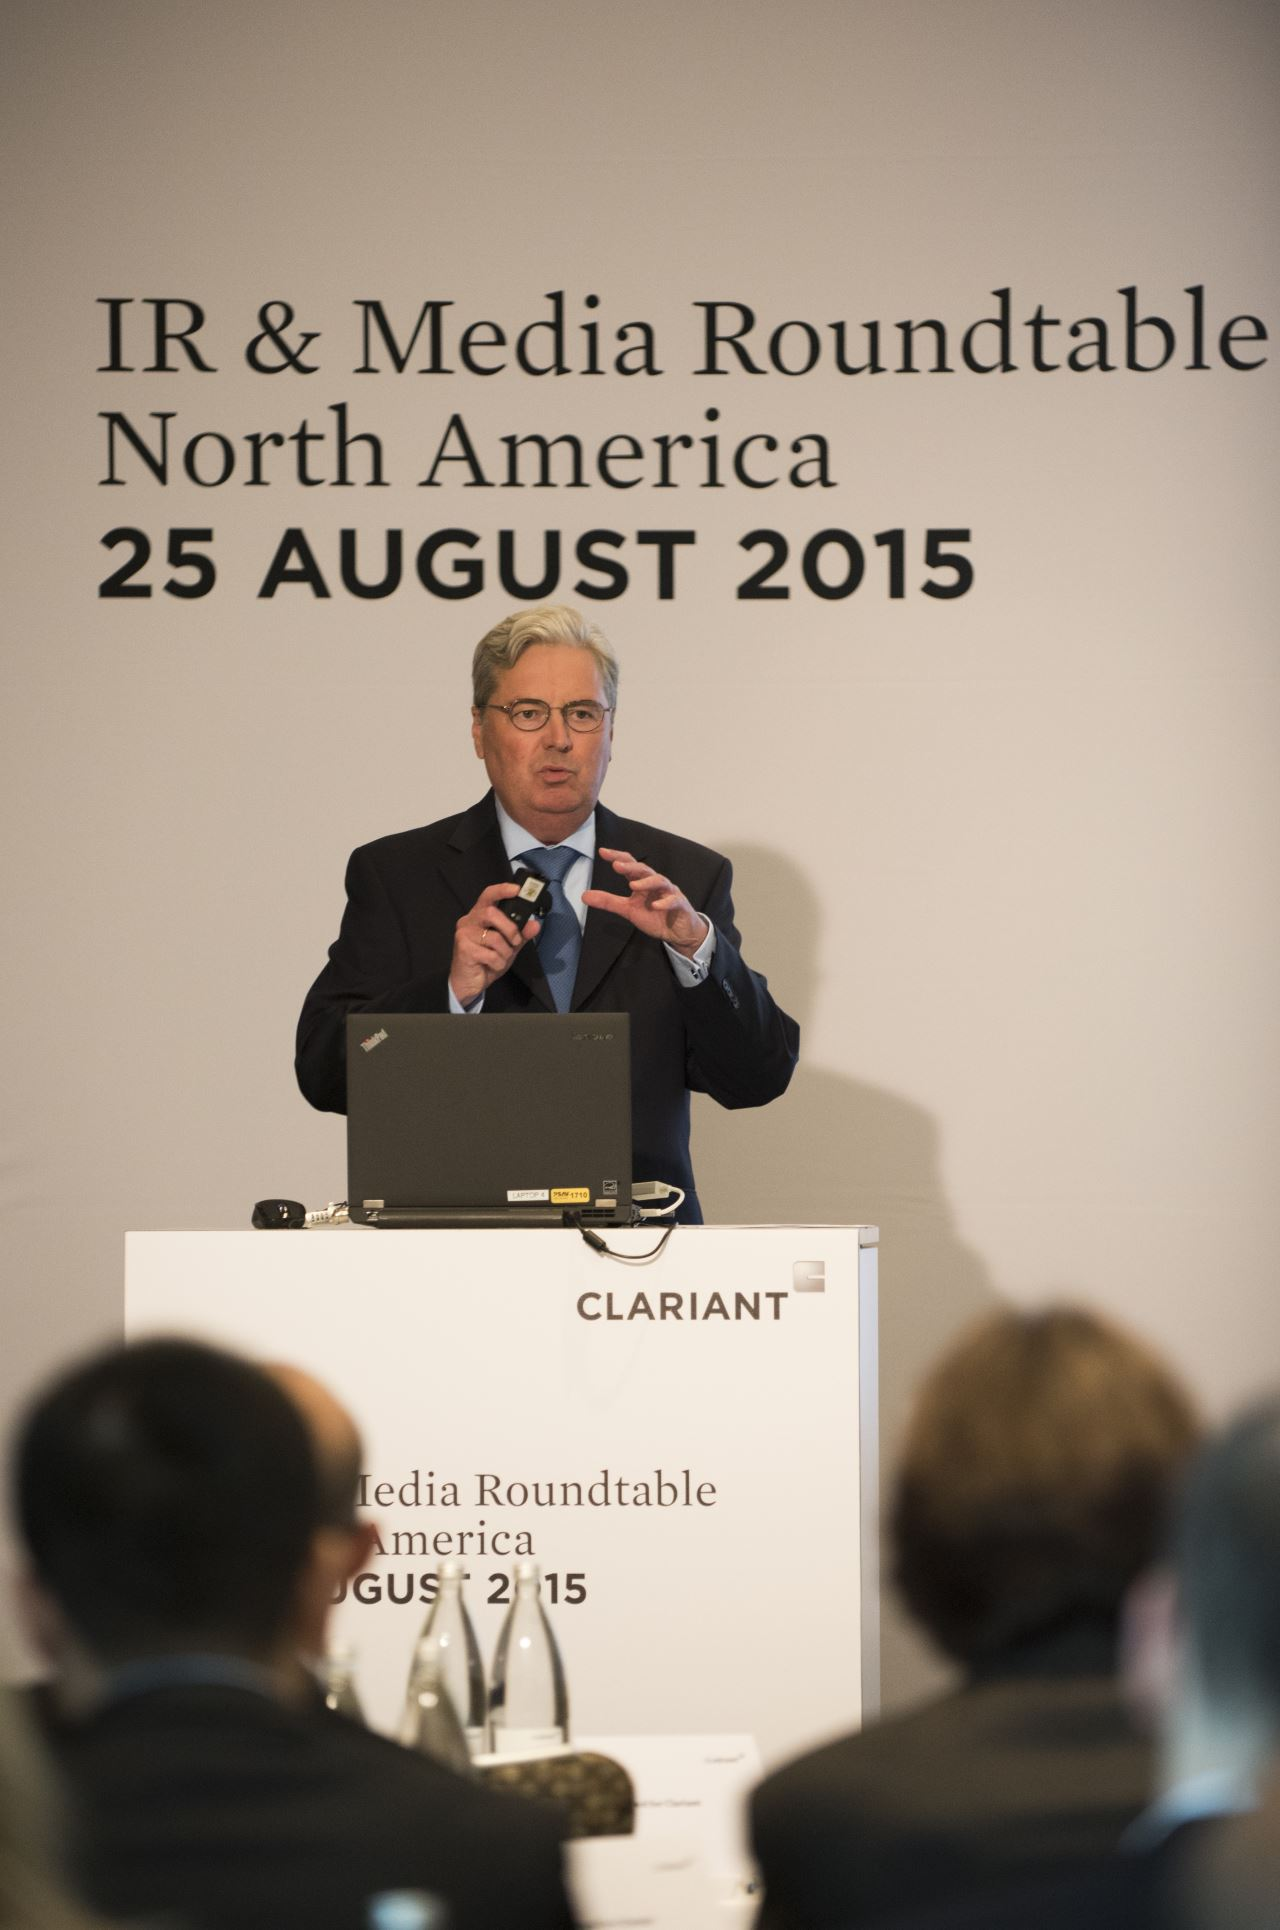 CEO Hariolf Kottmann highlights the importance of the North American region <br>